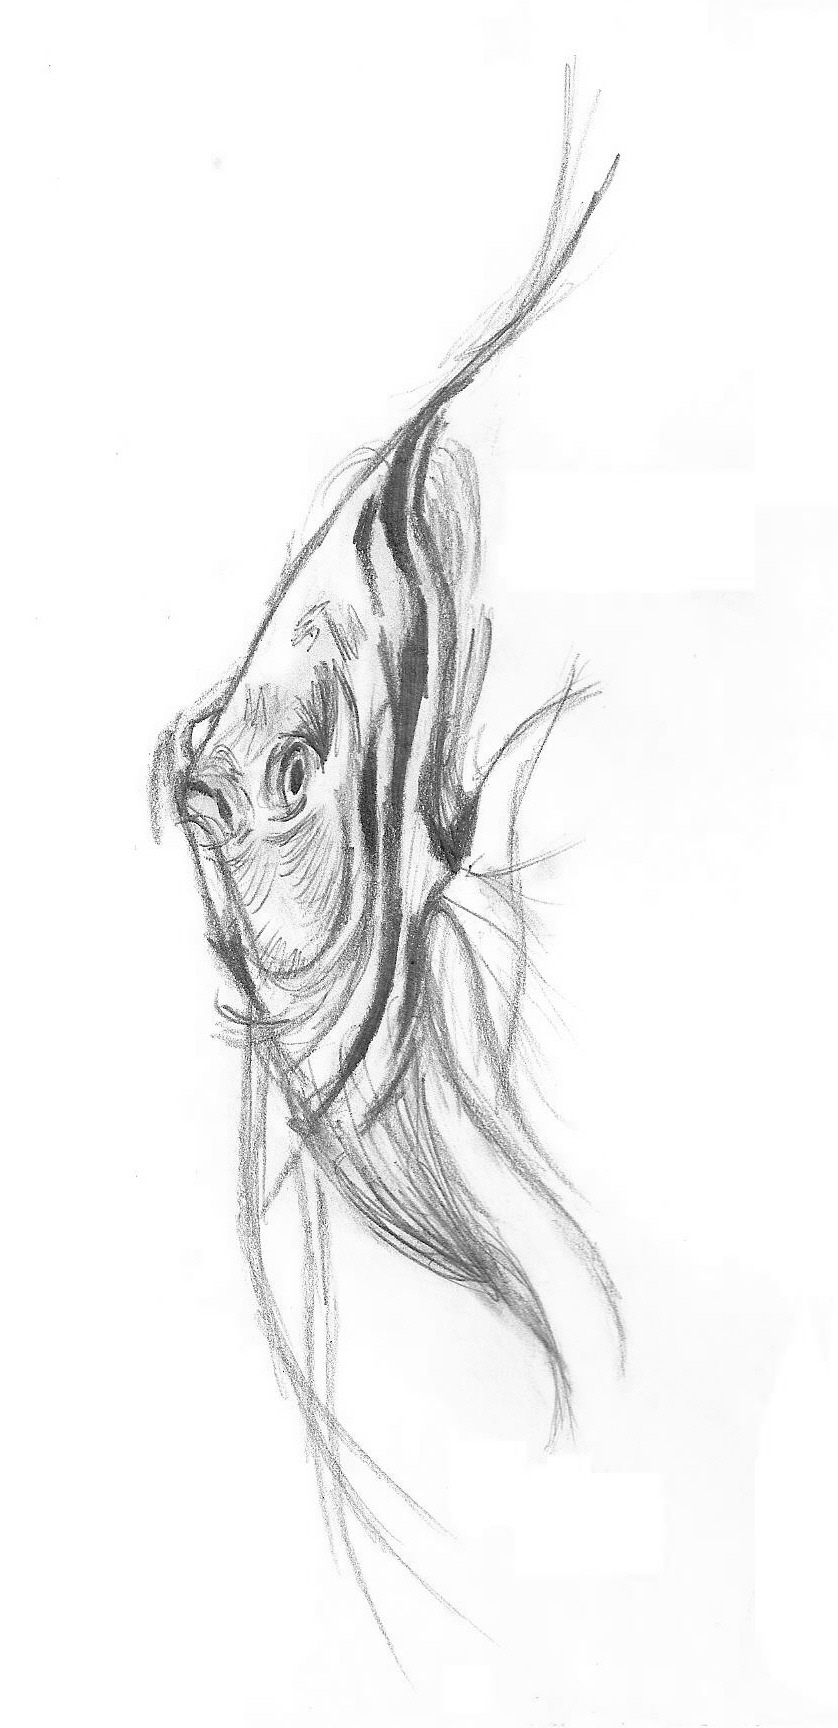 Fishes Pencil Drawing Tropical Fish Pencil838 x 1728